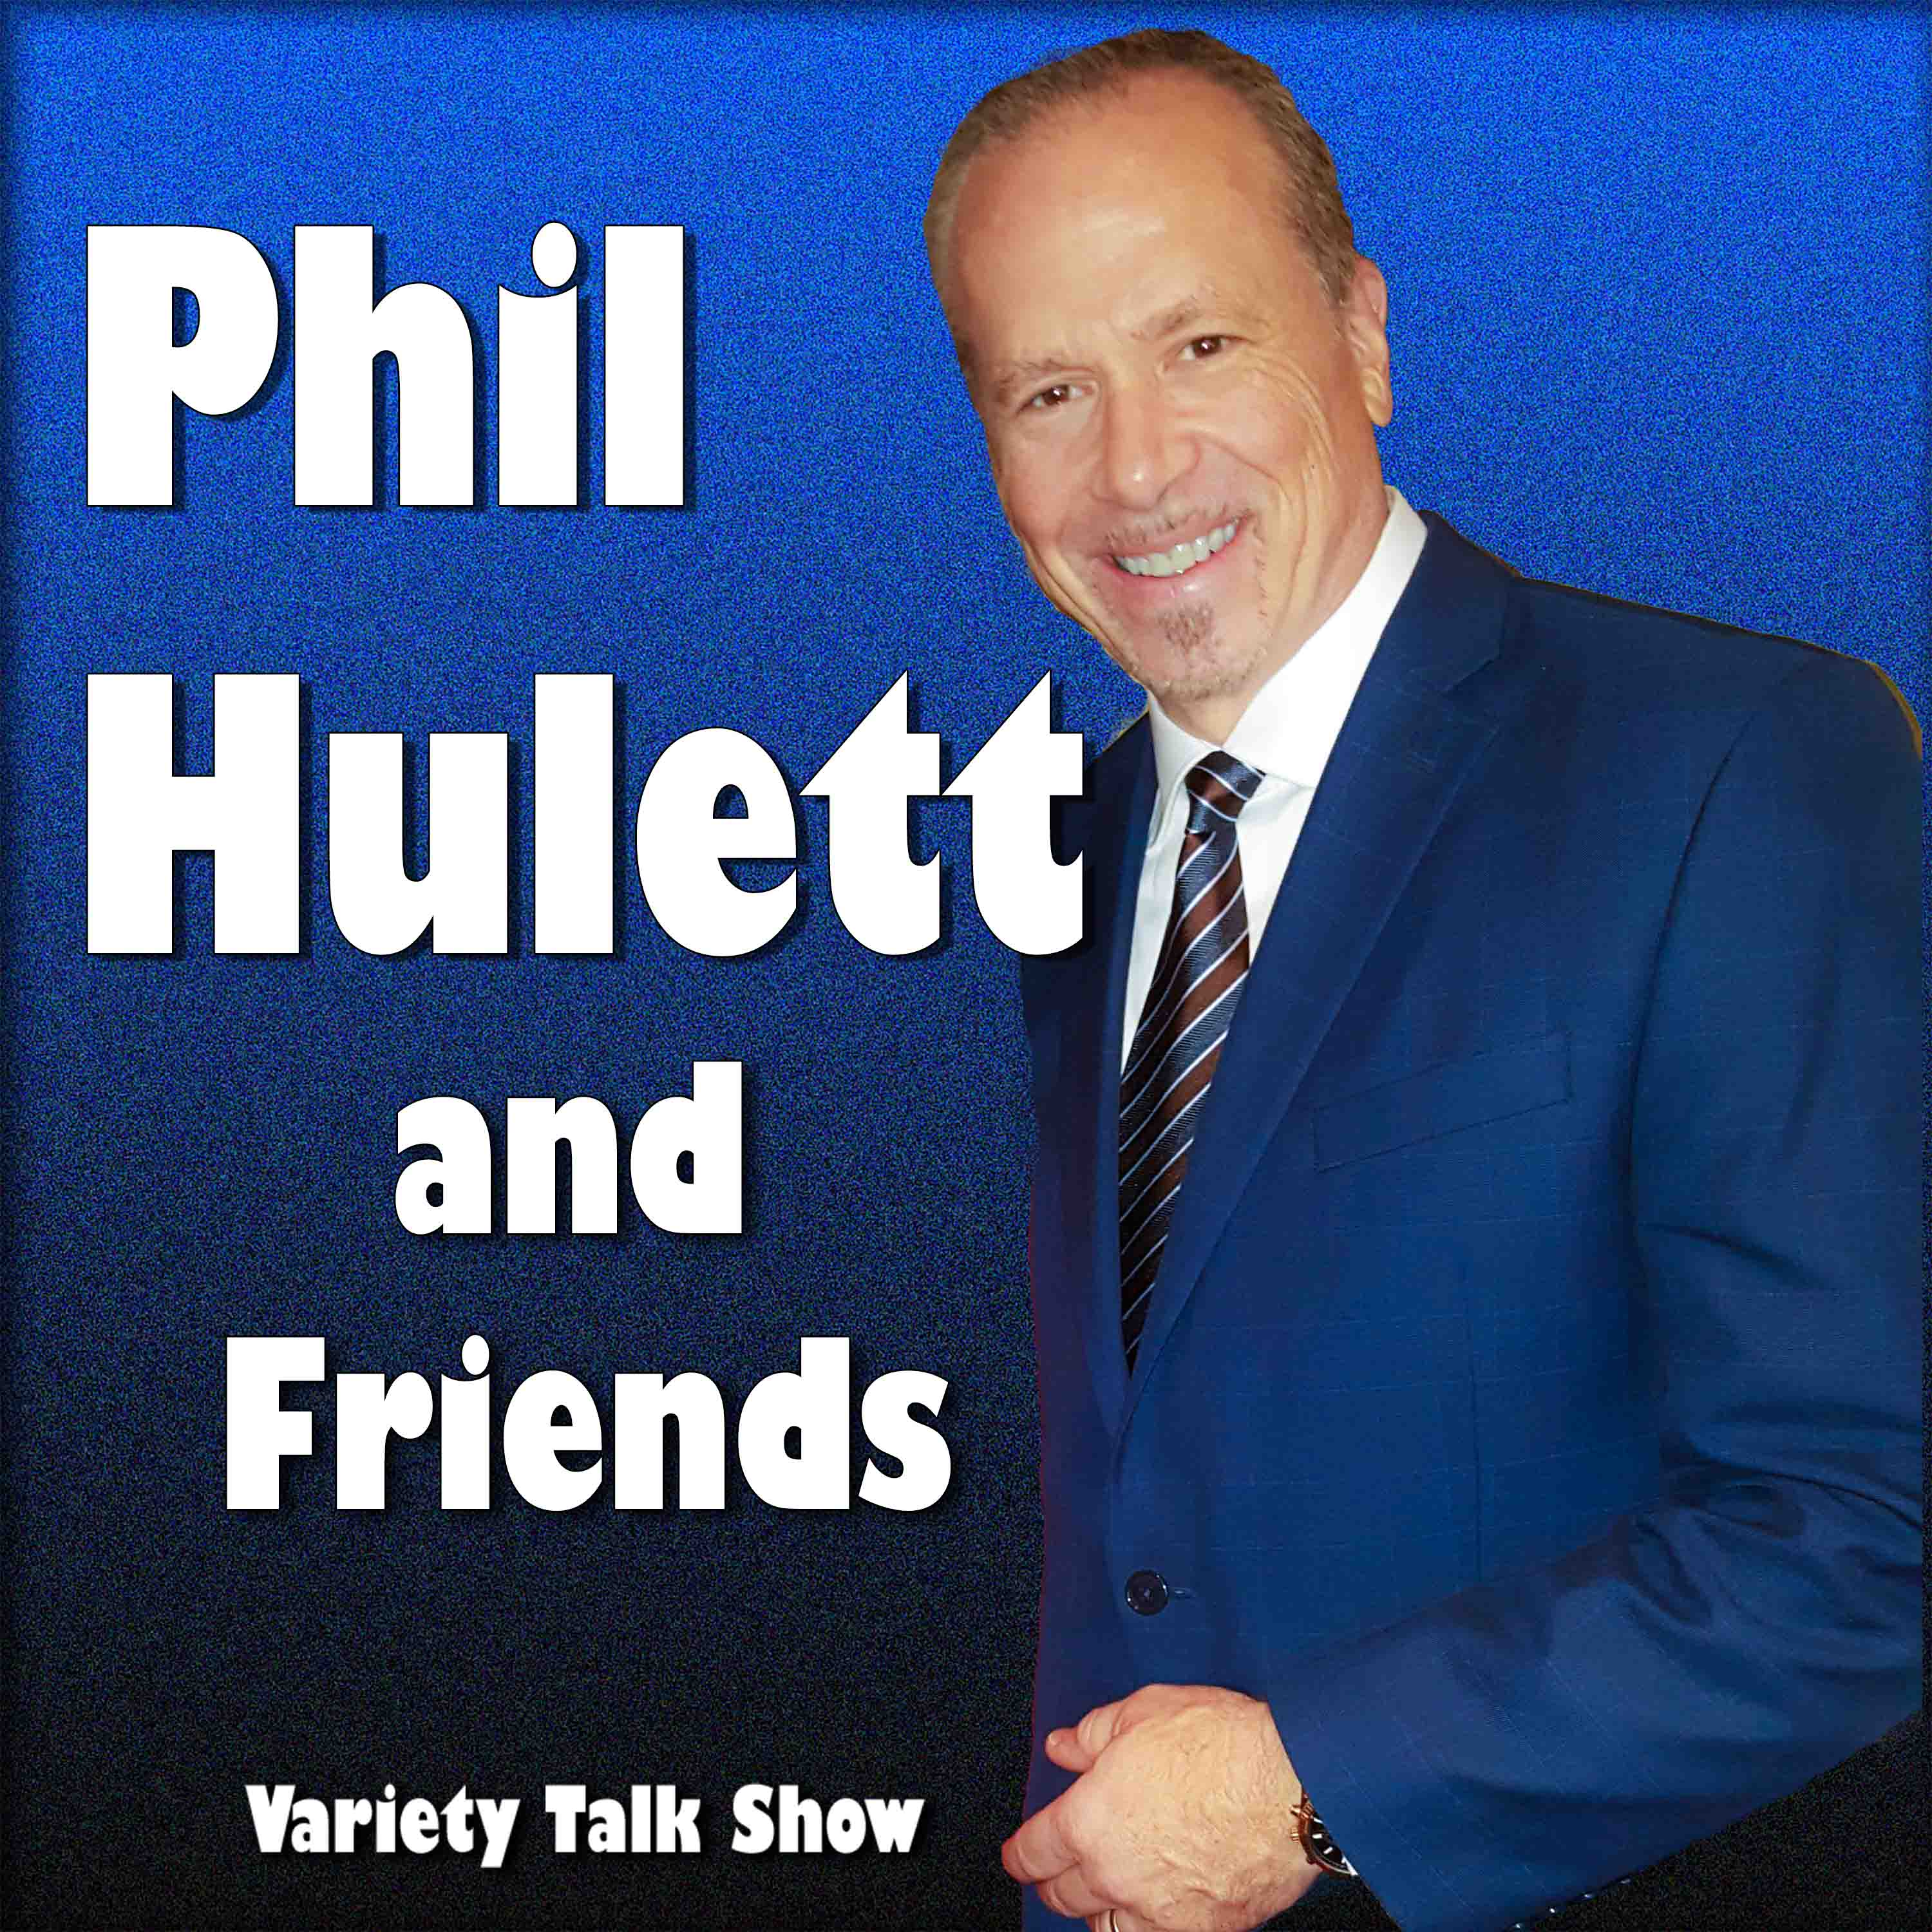 Phil Hulett and Friends - PodcastBlaster Podcast Directory